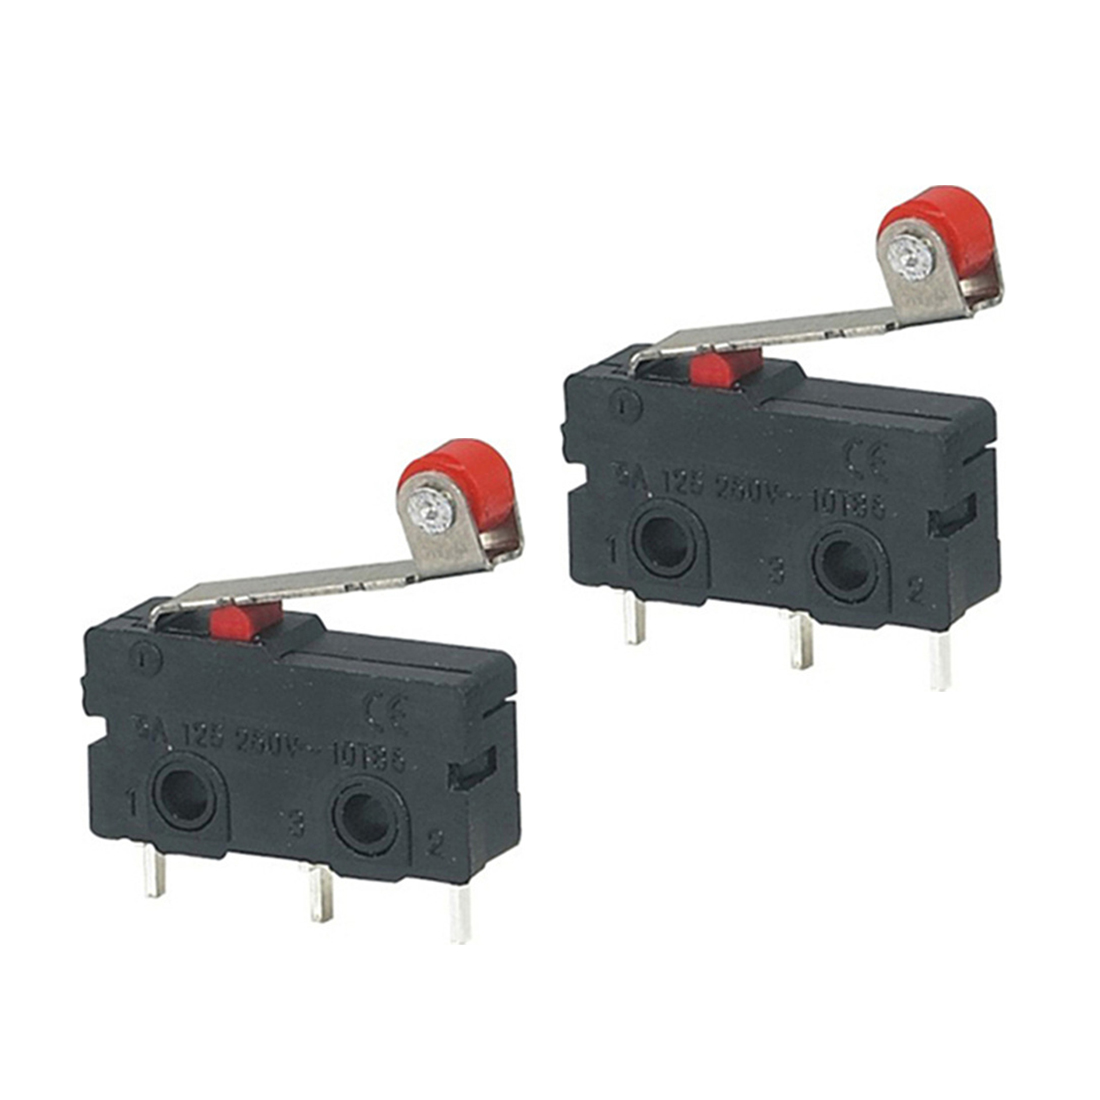 10Pcs Micro Roller Lever Arm Open Close Limit Switch KW12-3 PCB Microswitch XW